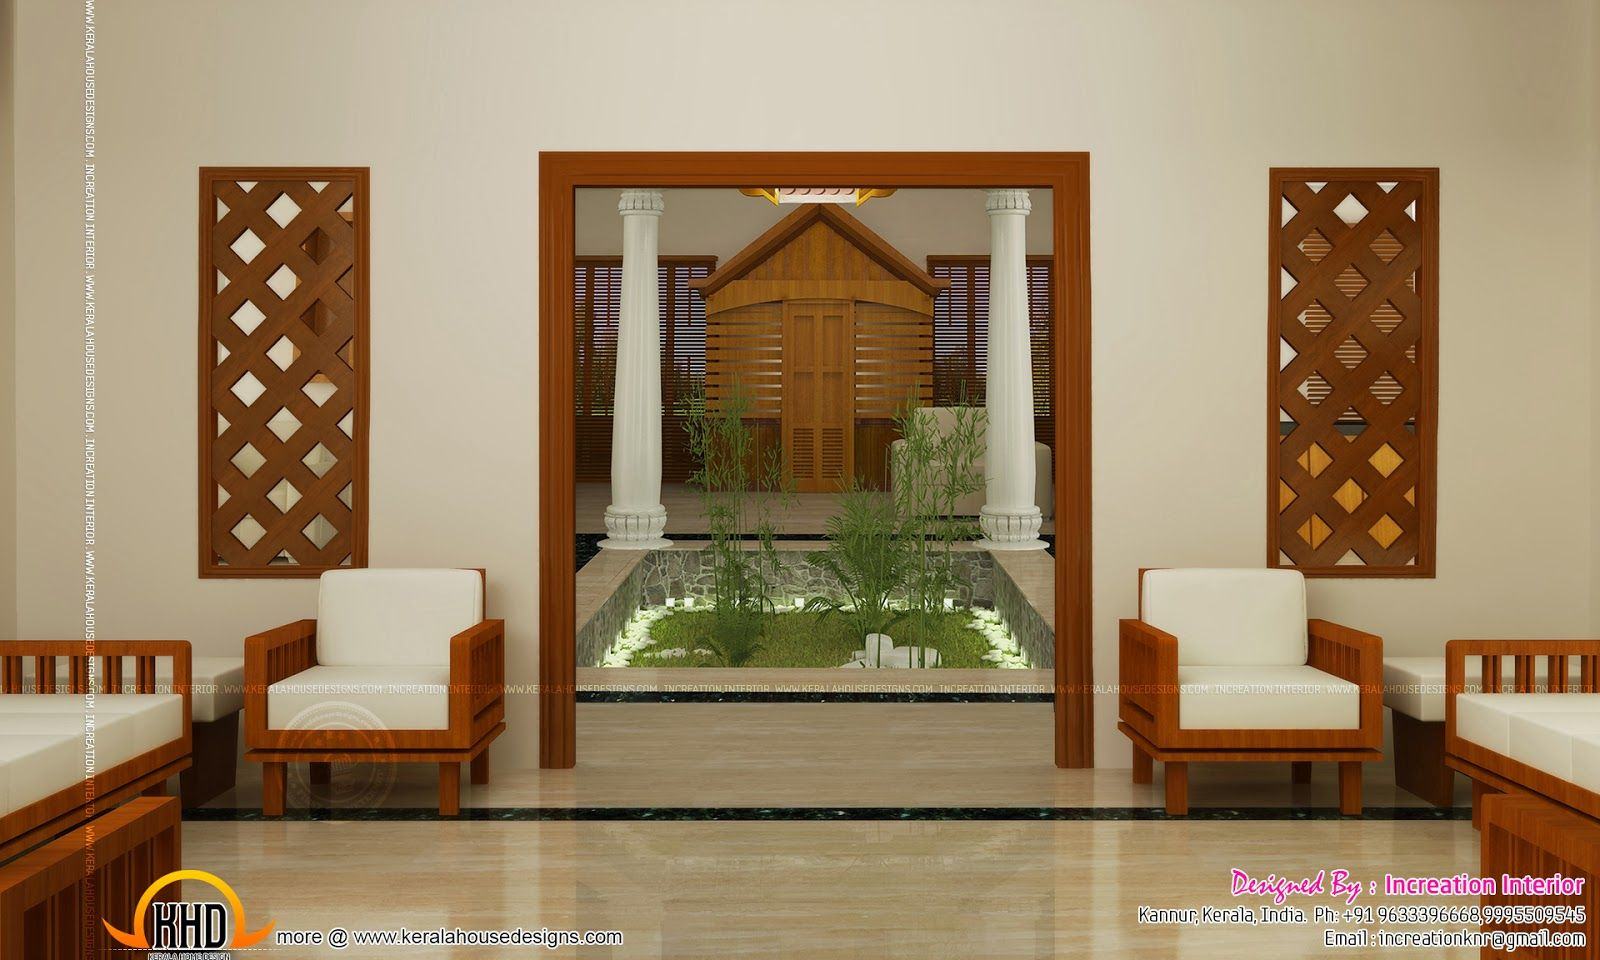 Bon Gallery Of Kerala Home Design, Floor Plans, Elevations, Interiors Designs  And Other House Related Products